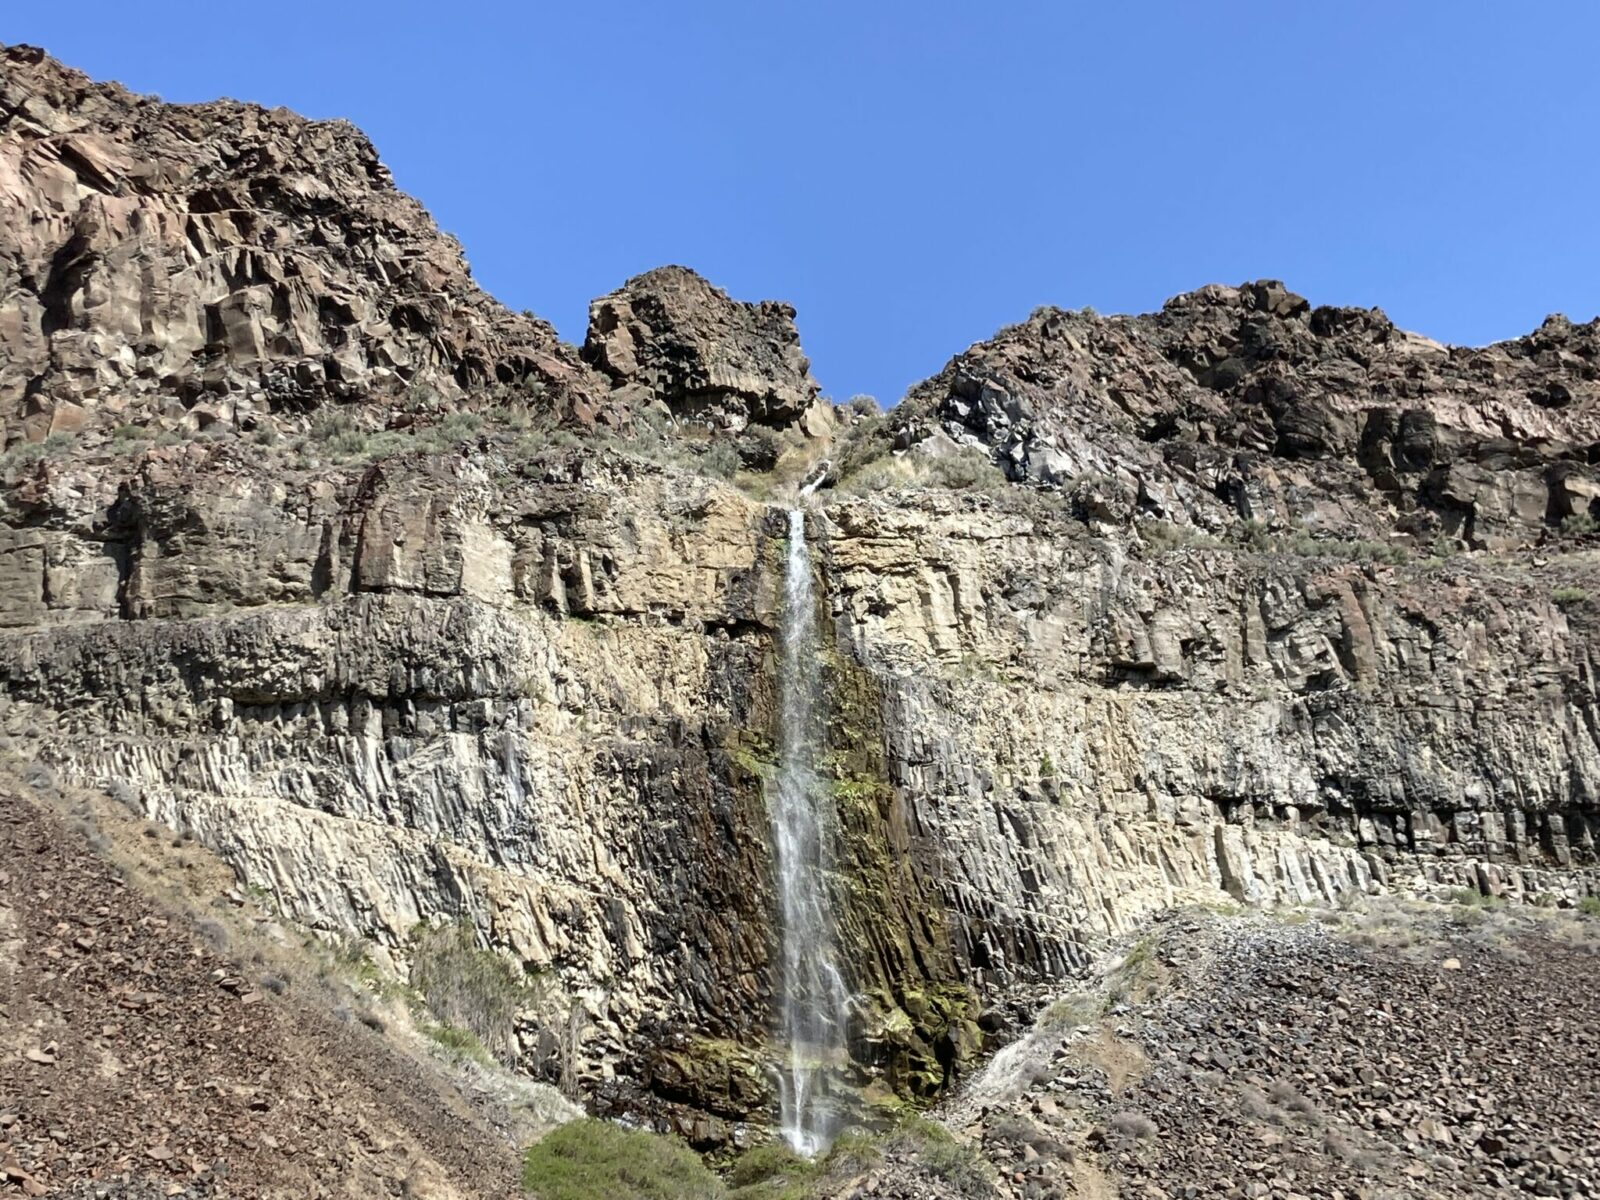 Narrow waterfall coming over vertical basalt rock on a sunny day in frenchman coulee